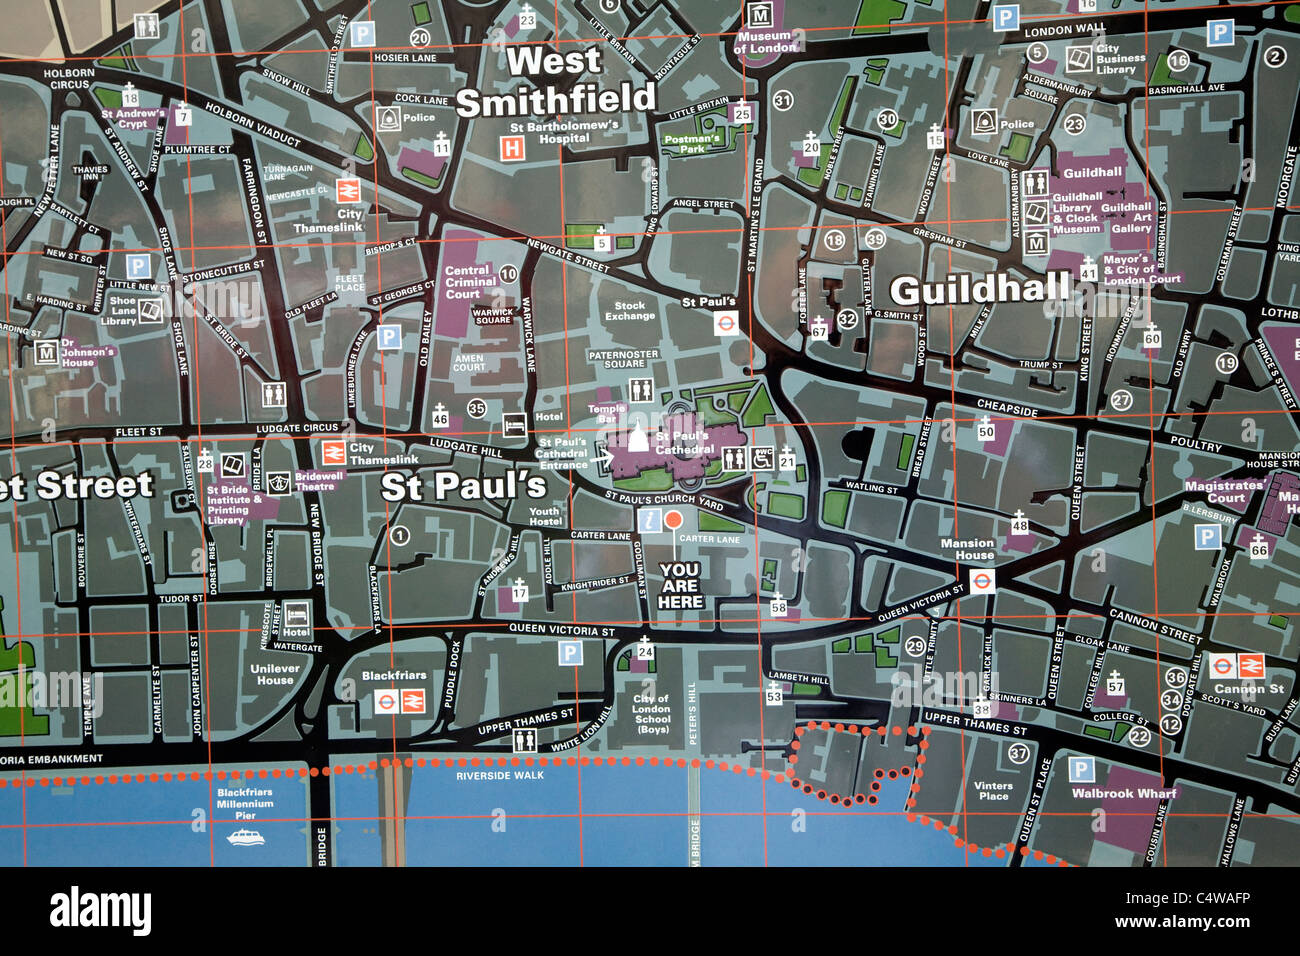 Central London Street Map.City Of London Tourist Street Map Central London Stock Photo